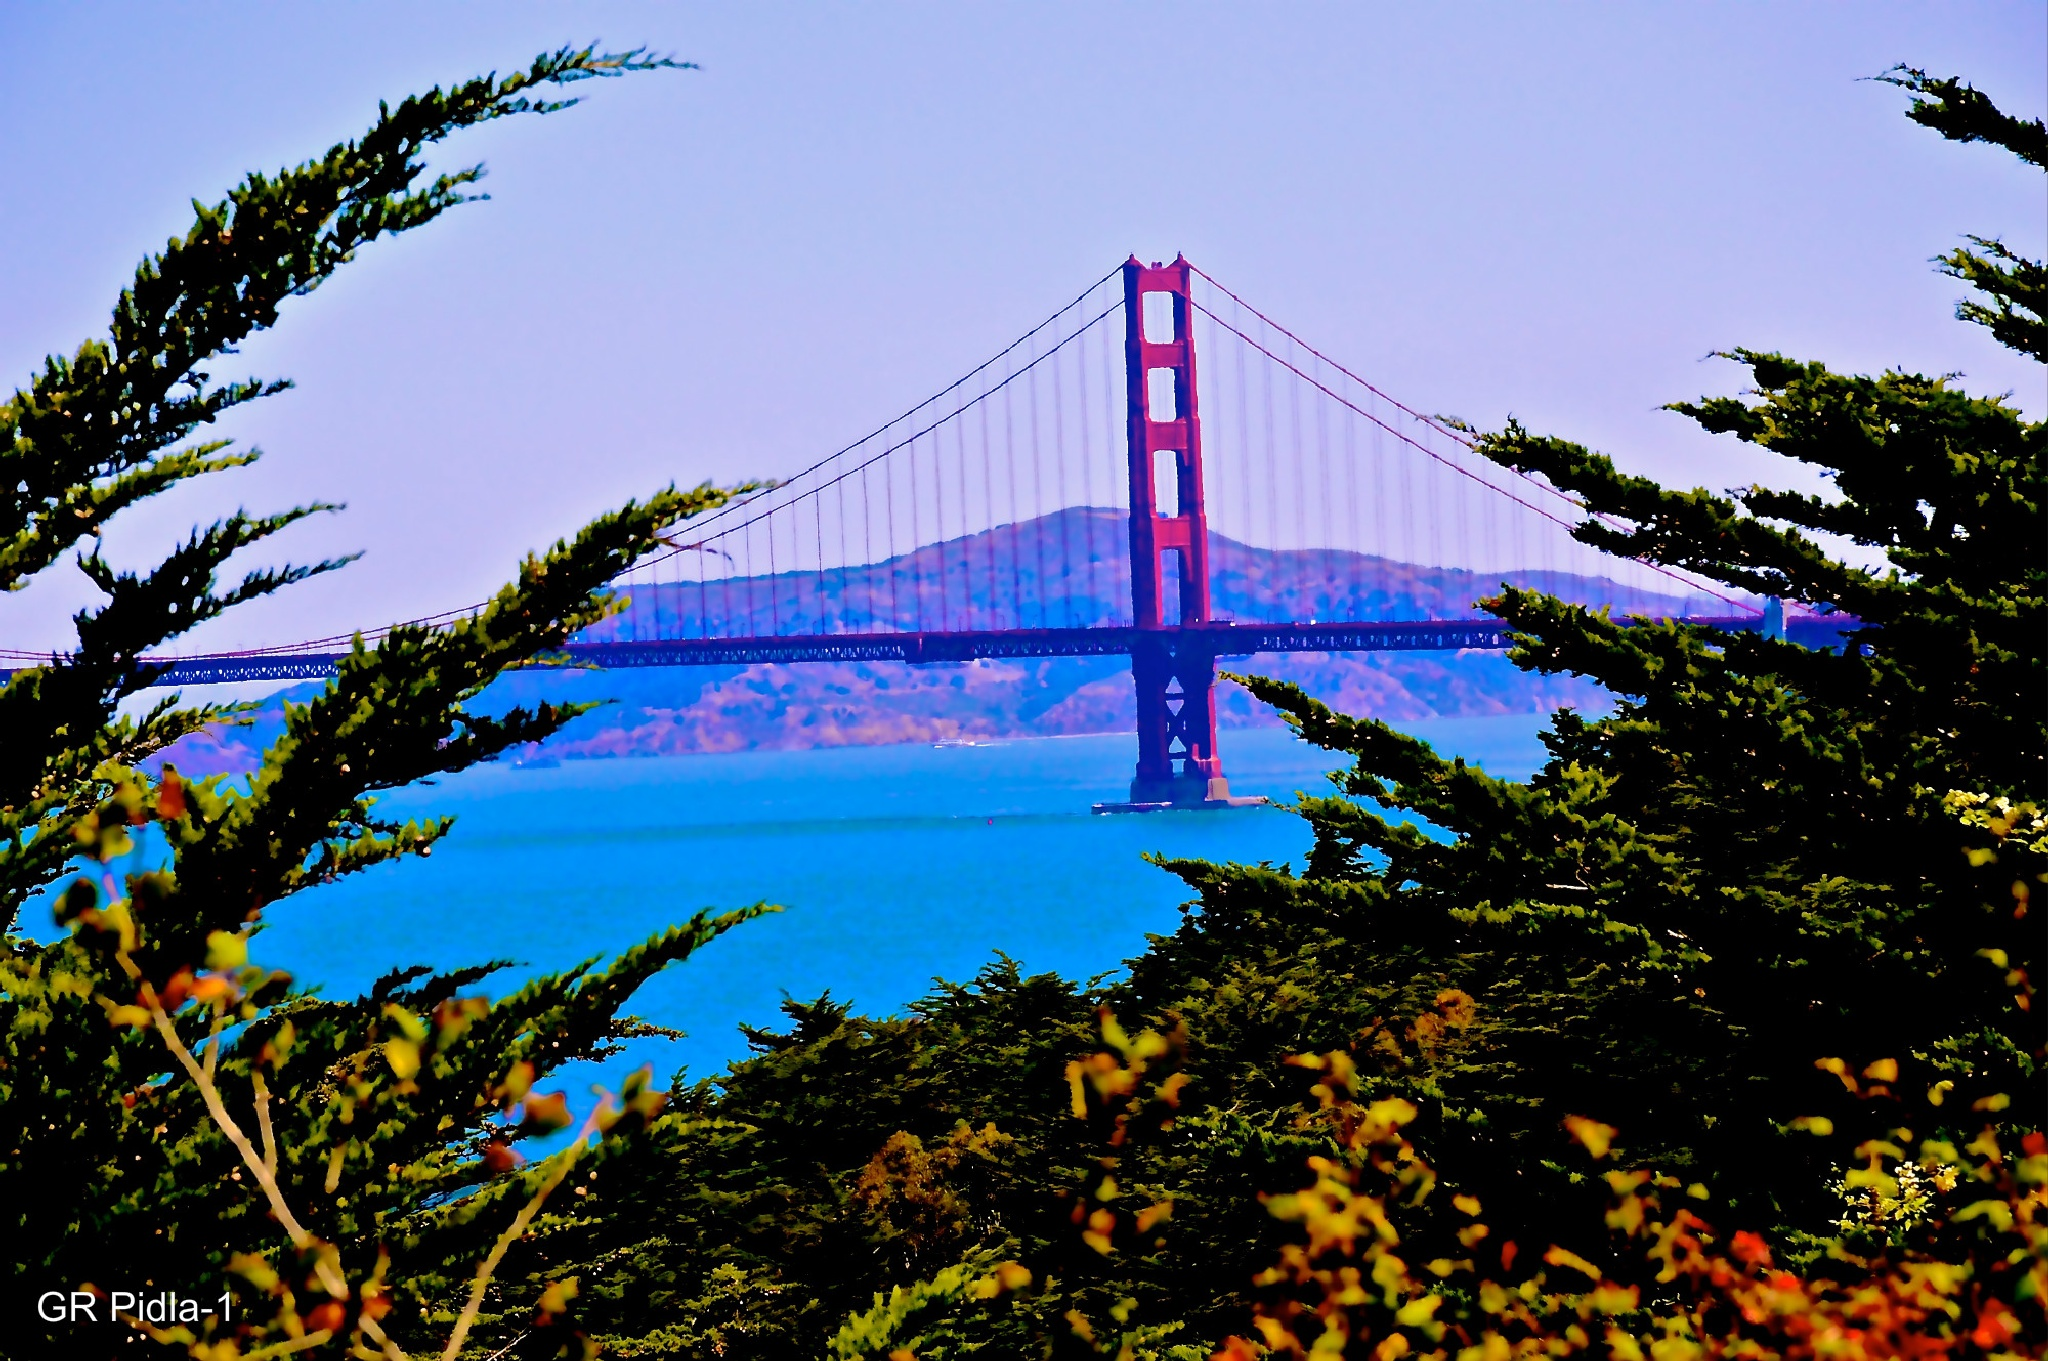 South Tower of the Golden Gate Bridge by Gina  Alwaysmile (*_*)